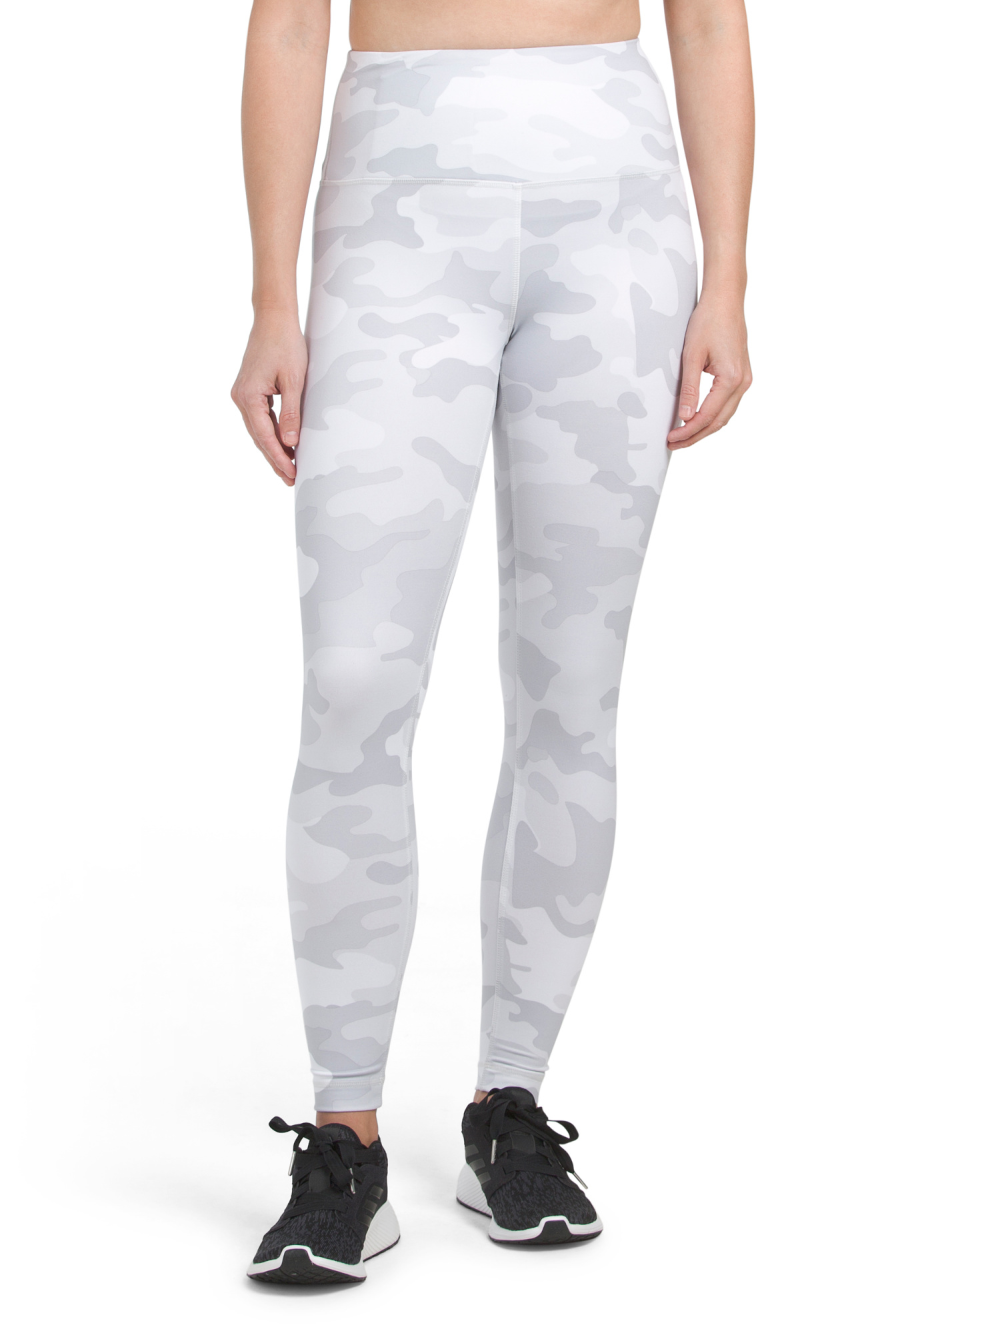 Camo Printed Ankle Leggings New Arrivals T J Maxx Camo Leggings Outfit White Camo Leggings Outfit White Camo Leggings [ 1333 x 1000 Pixel ]